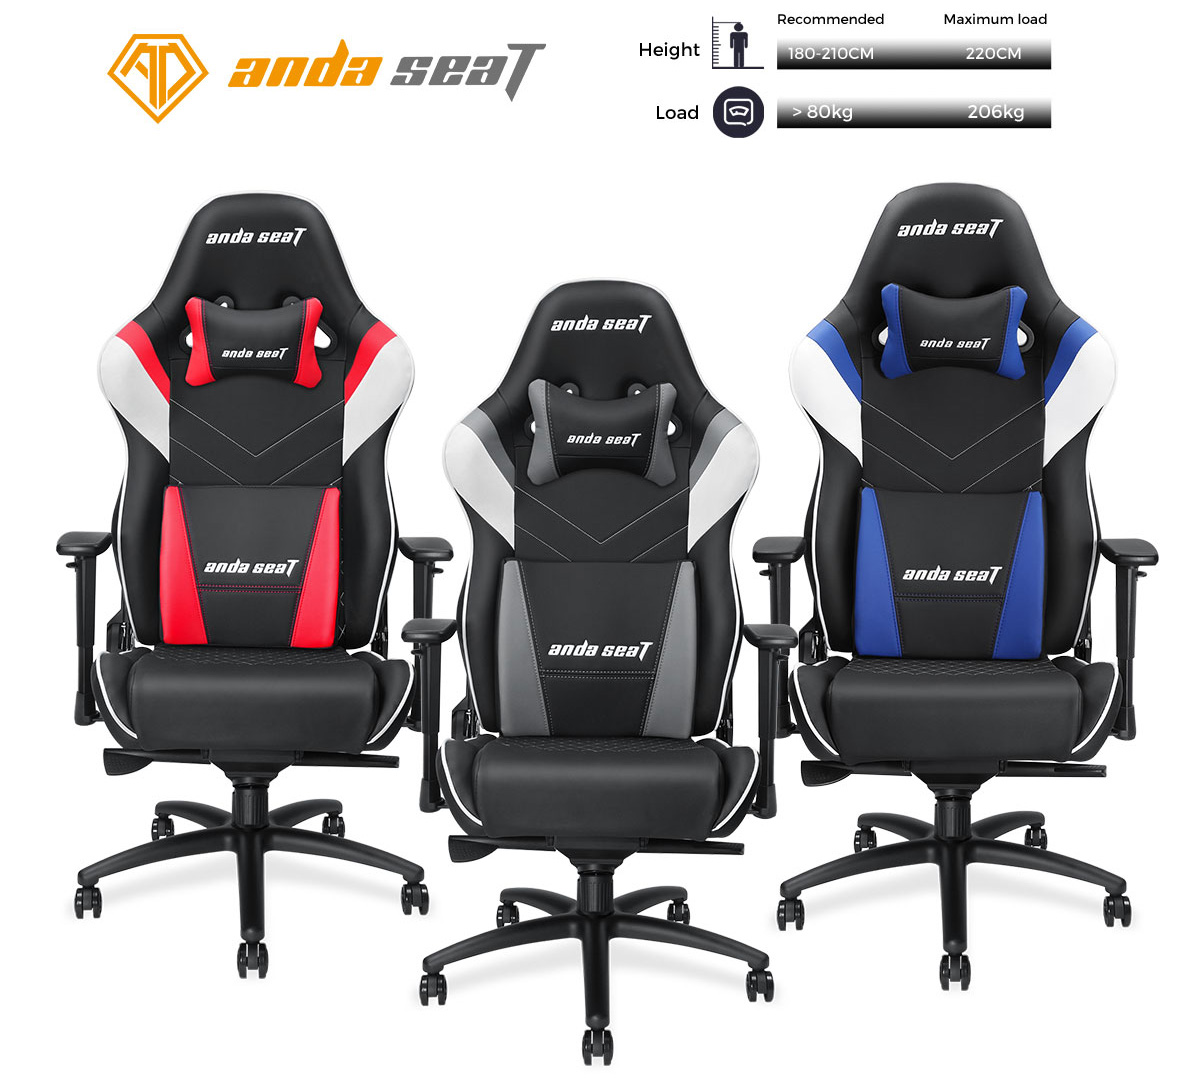 Anda Seat Durable And Comfortable Gaming Chairs